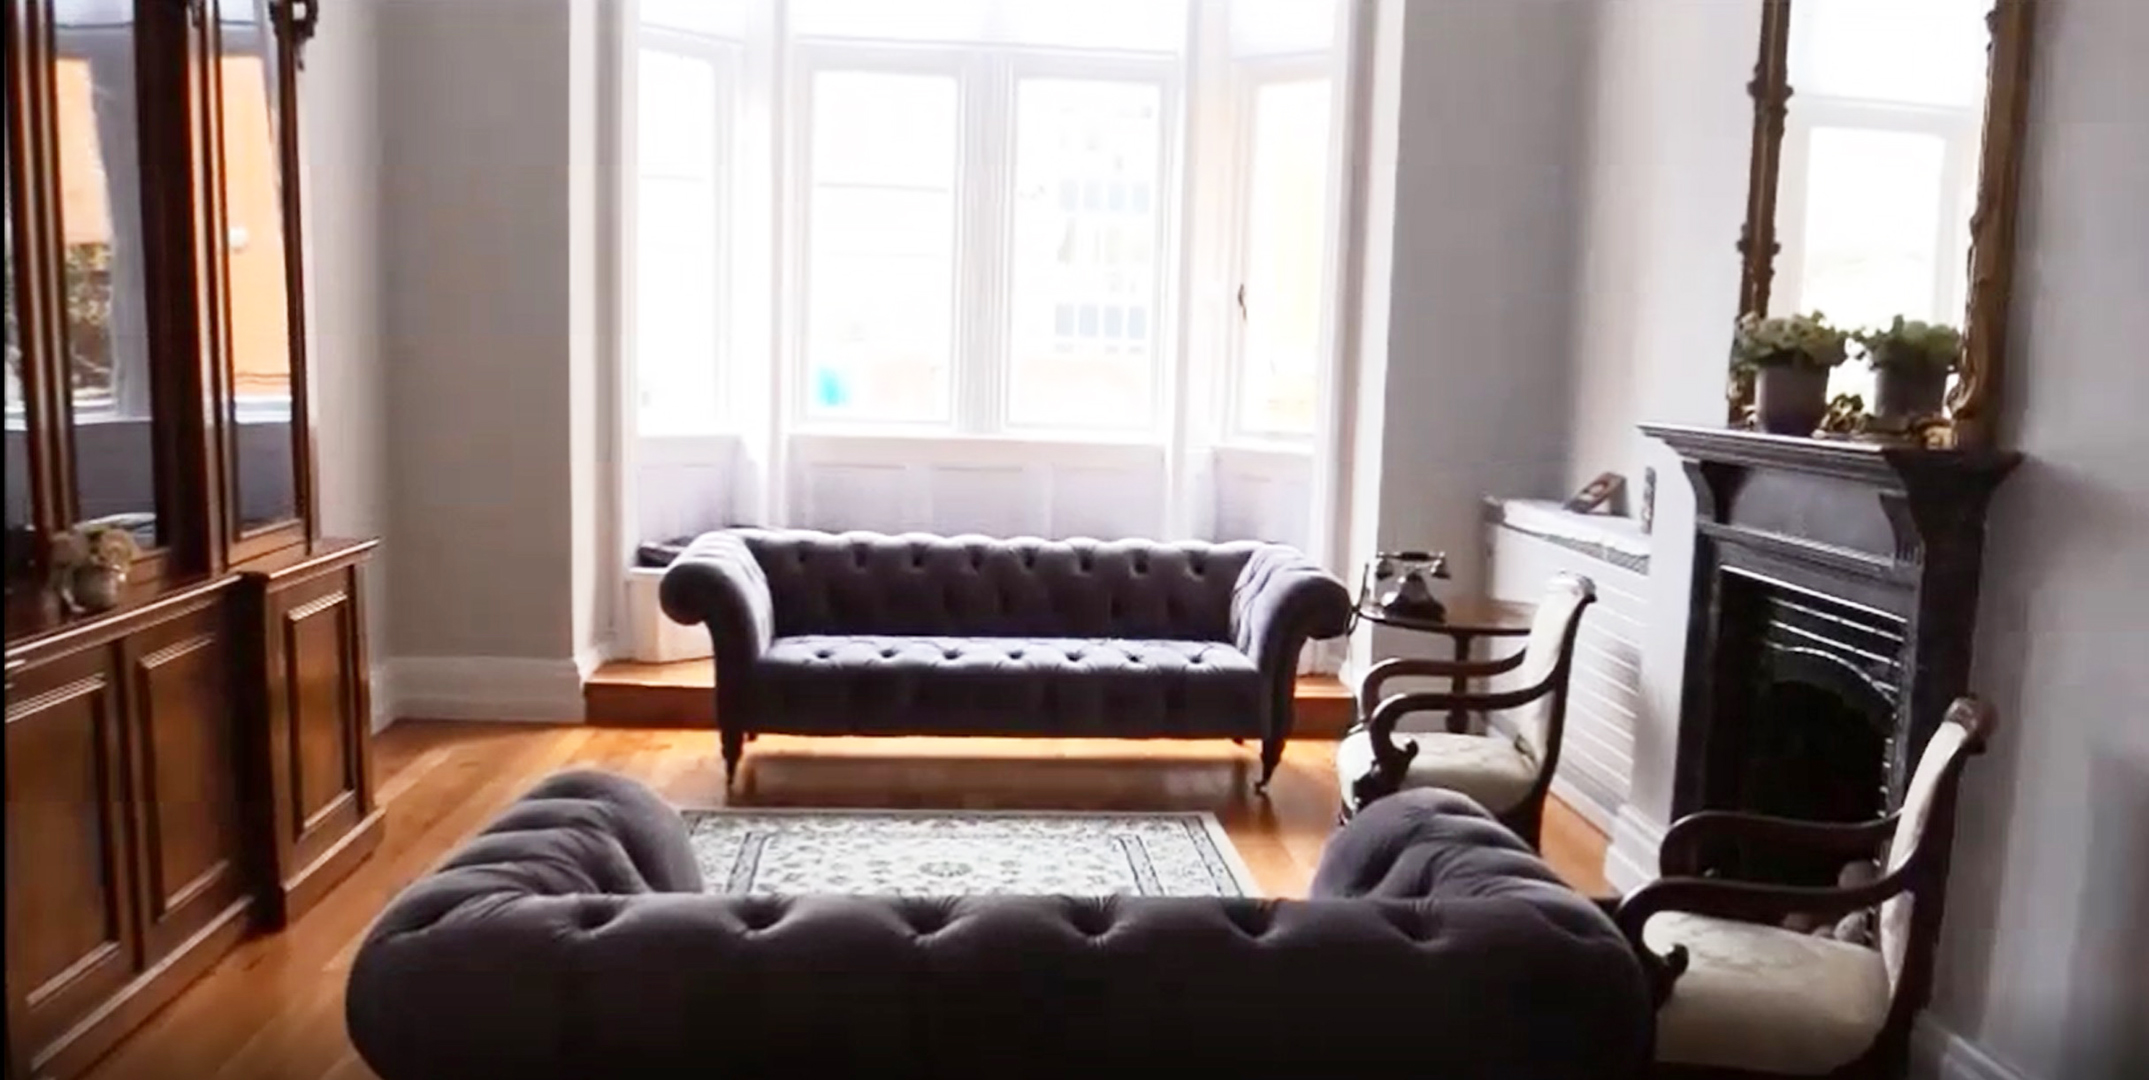 Drawing Room - Click the button below and our dedicated team will get back to you